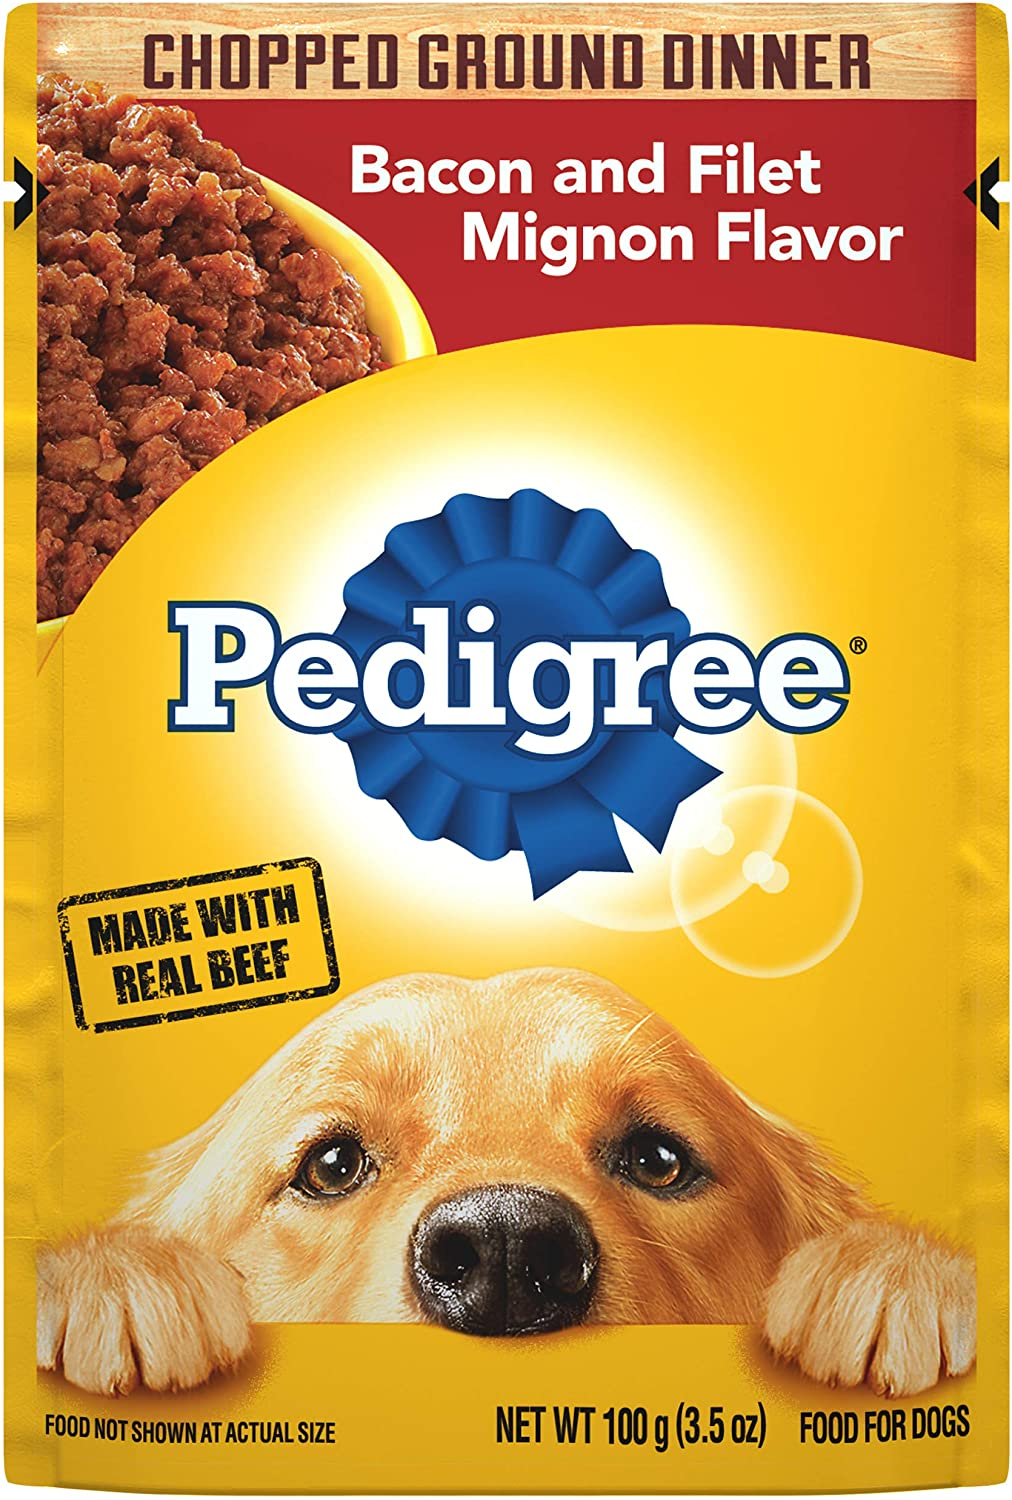 PEDIGREE Adult Wet Dog Food Chopped Ground Dinner Bacon and Filet Mignon Flavor, (16) 3.5 oz. Pouches